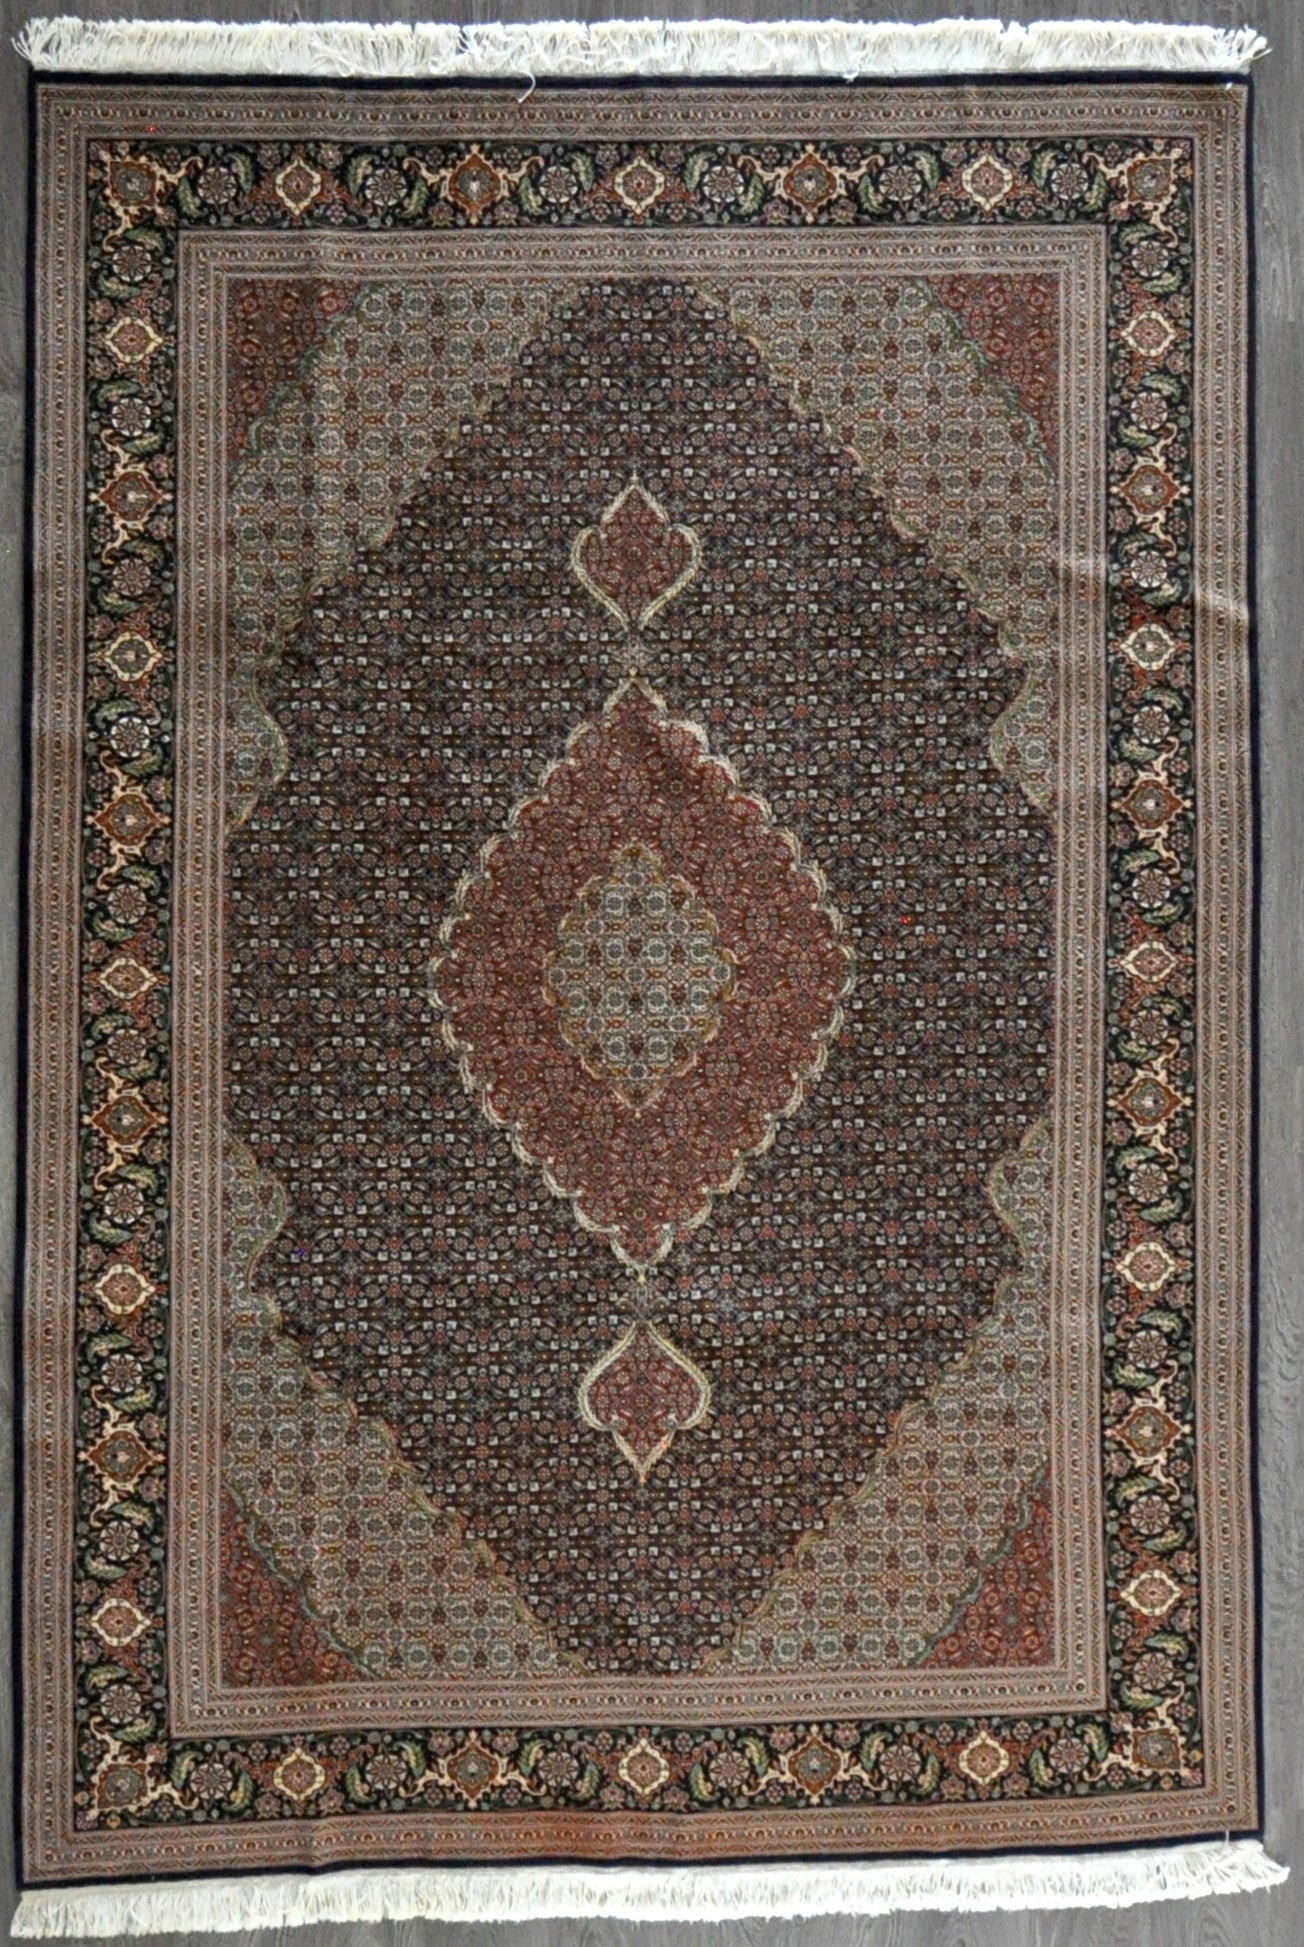 6.7x9.6 persian fish tabriz 60 Raj #89230